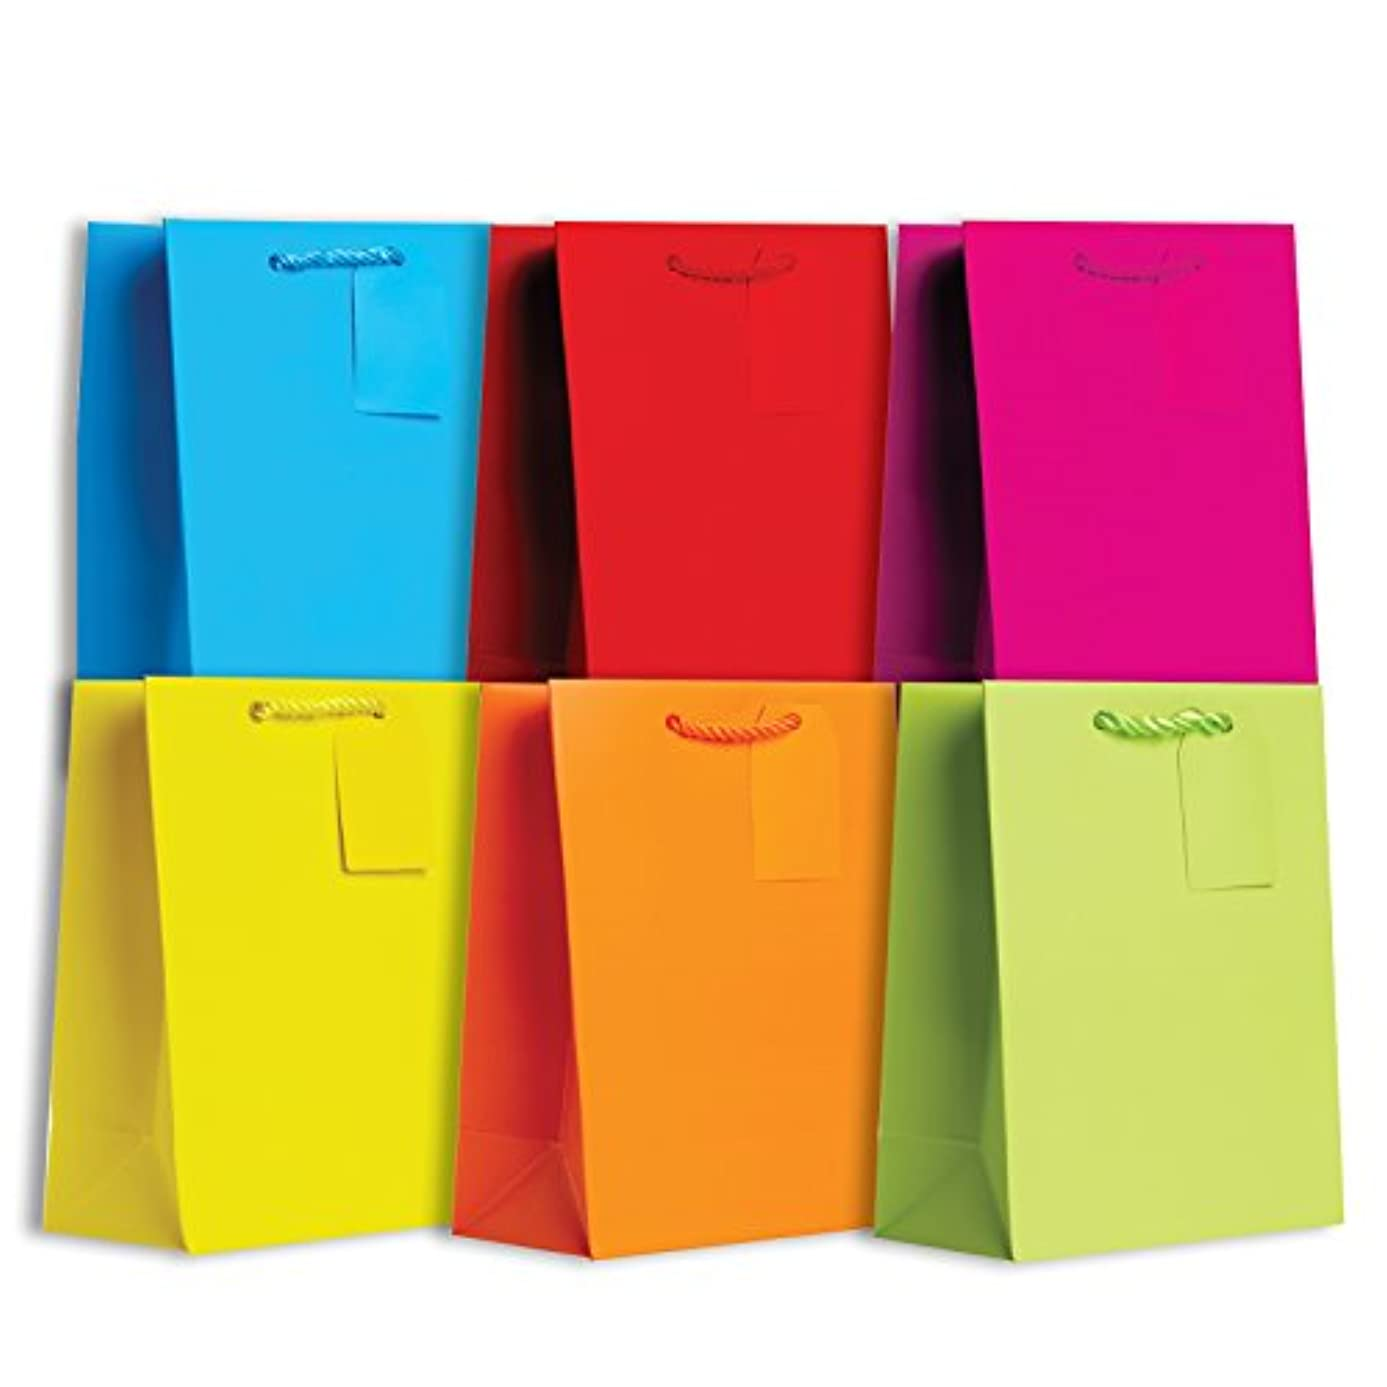 Jillson Roberts 6-Count Medium All-Occasion Solid Color Gift Bags Available in 4 Different Assortments, Bold and Bright